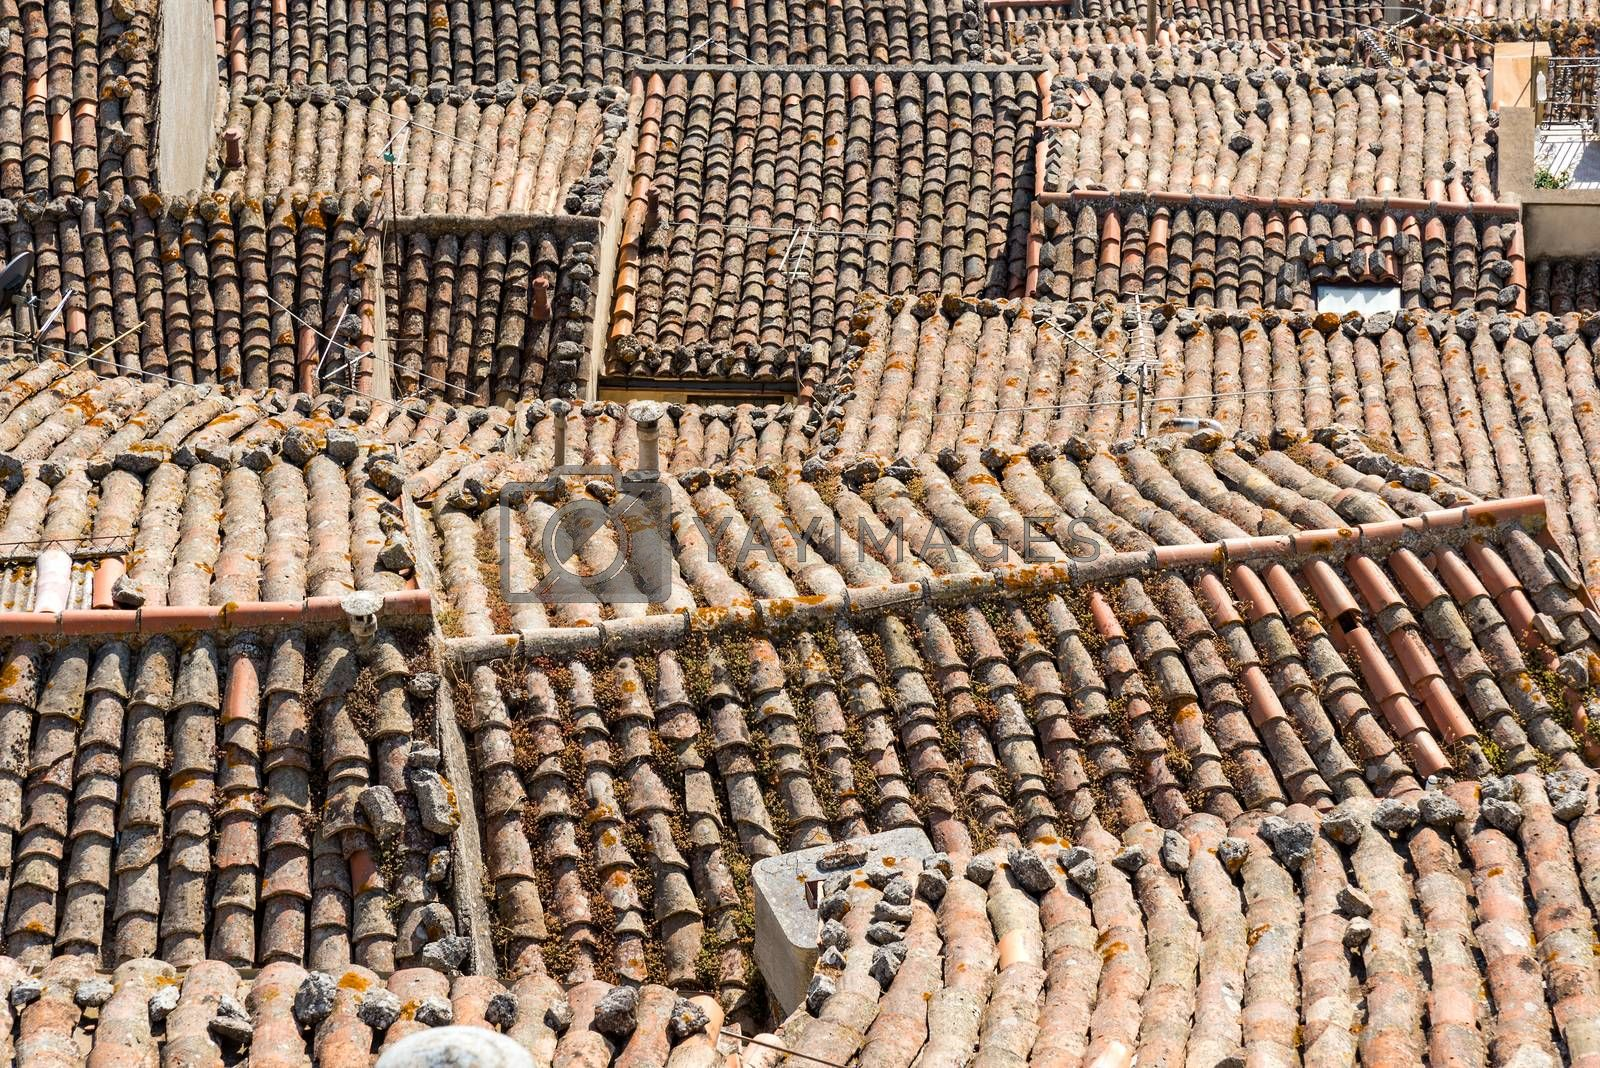 The roofs of the historic town of Gangi in Sicily